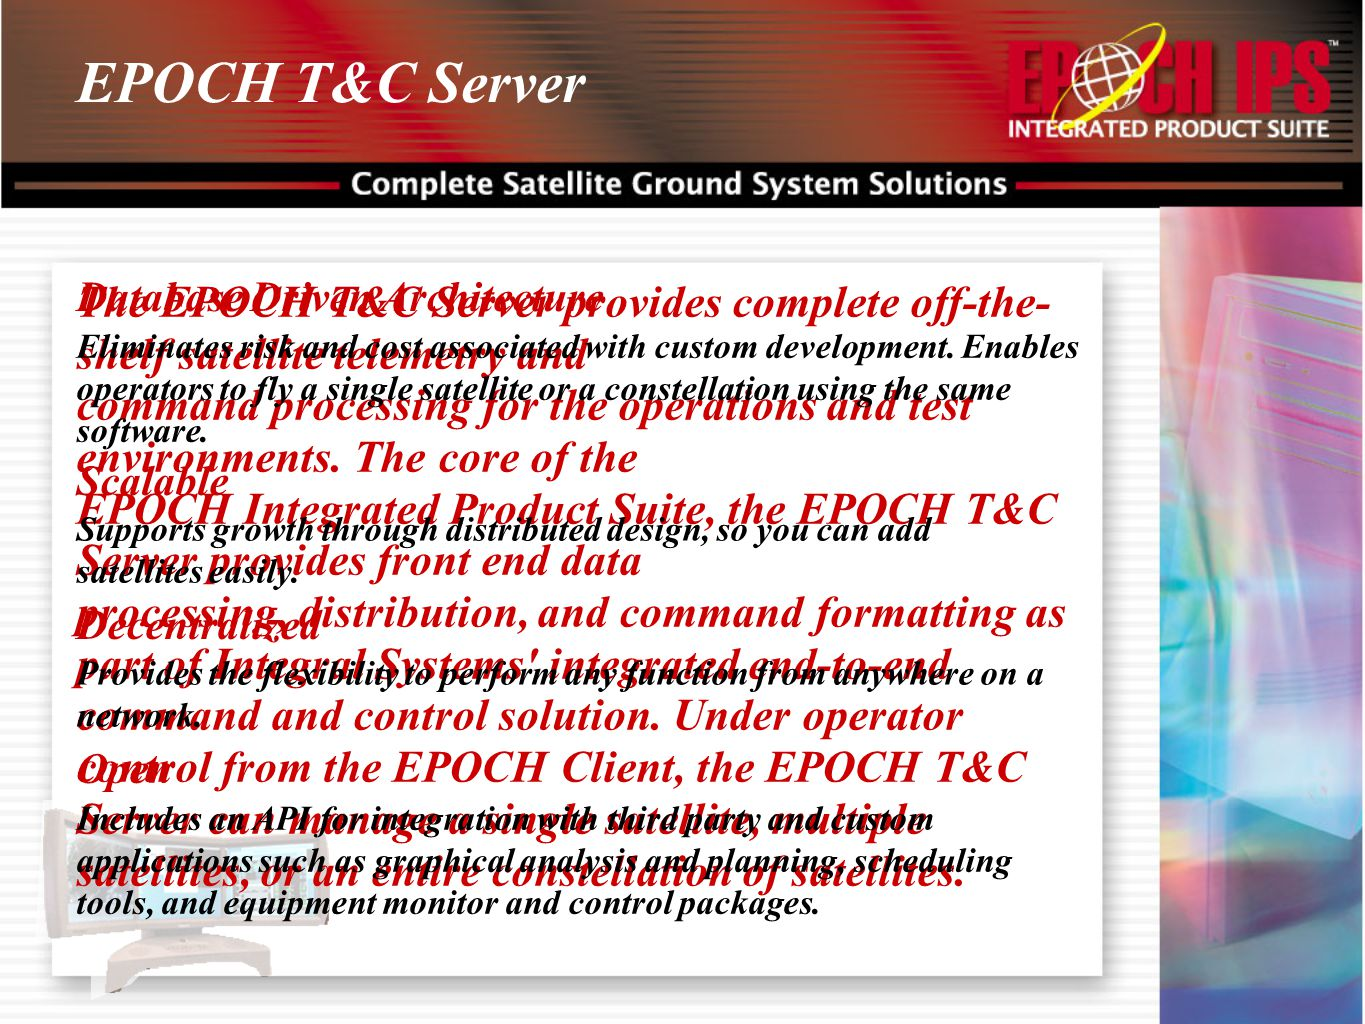 EPOCH T&C Server Database Driven Architecture. The EPOCH T&C Server provides complete off-the-shelf satellite telemetry and.